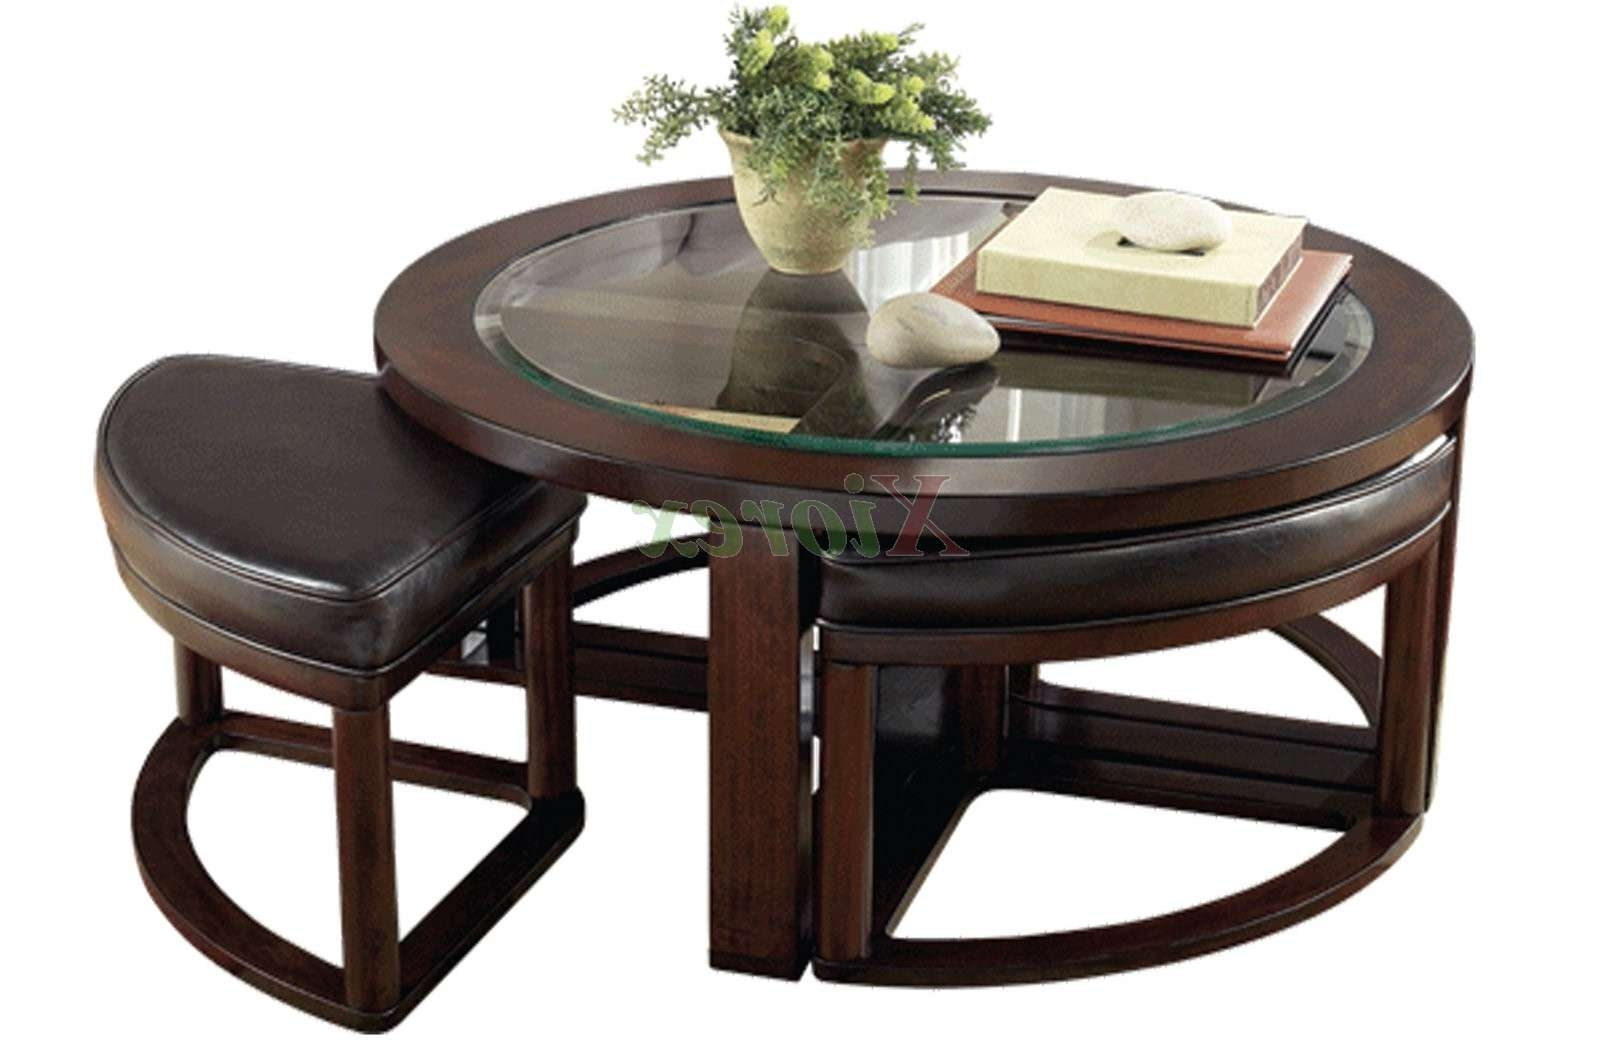 Coffee Table : Excellent Coffee Table With Chairs Underneath Intended For Famous Coffee Table With Chairs (View 17 of 20)